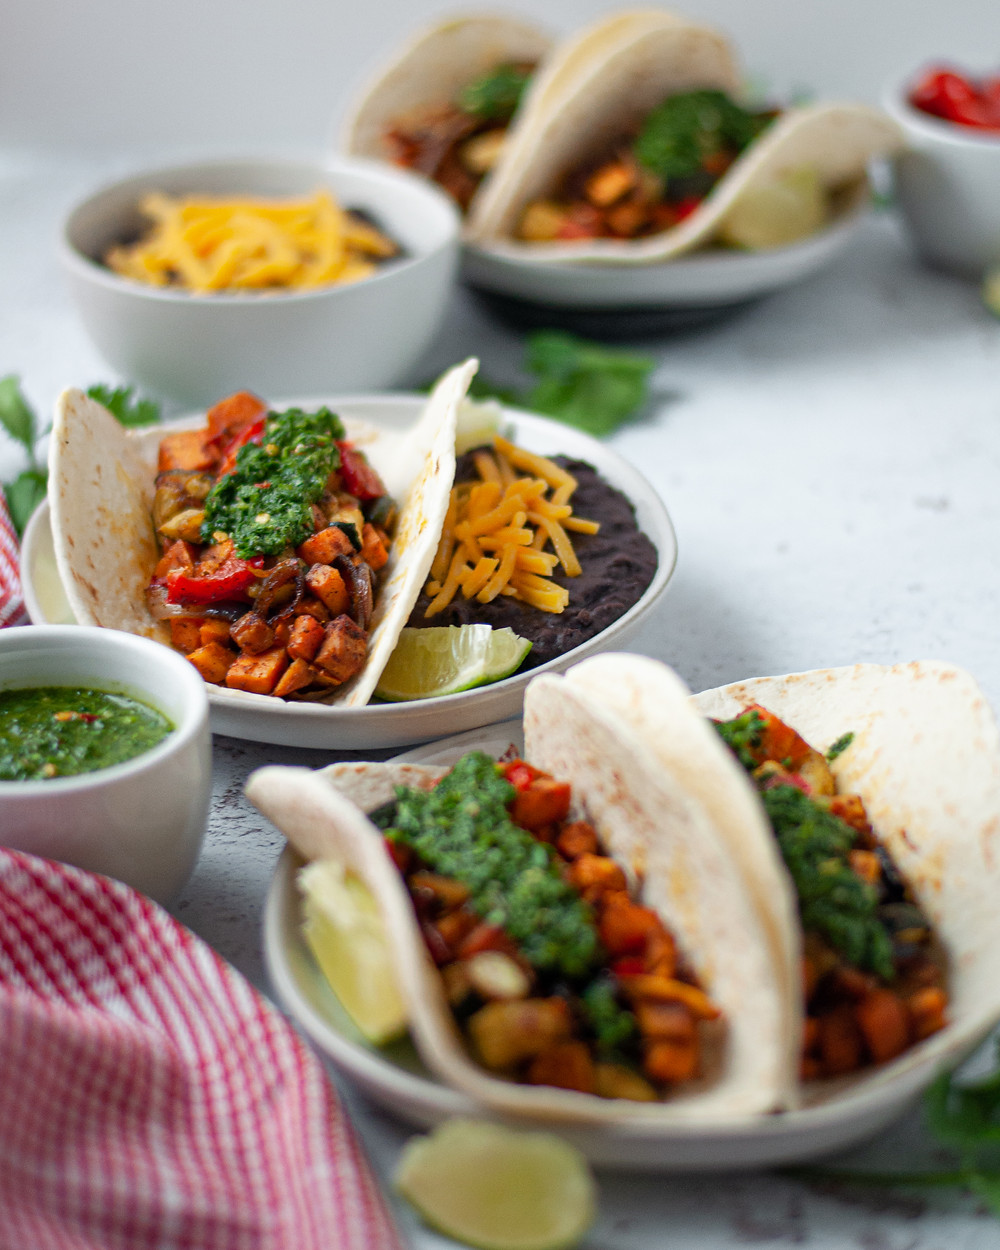 Three plates of this vegetarian taco recipe served up and ready to eat. Each vegetable taco is covered in homemade chimichurri sauce, and there is a side of refried beans with cheese